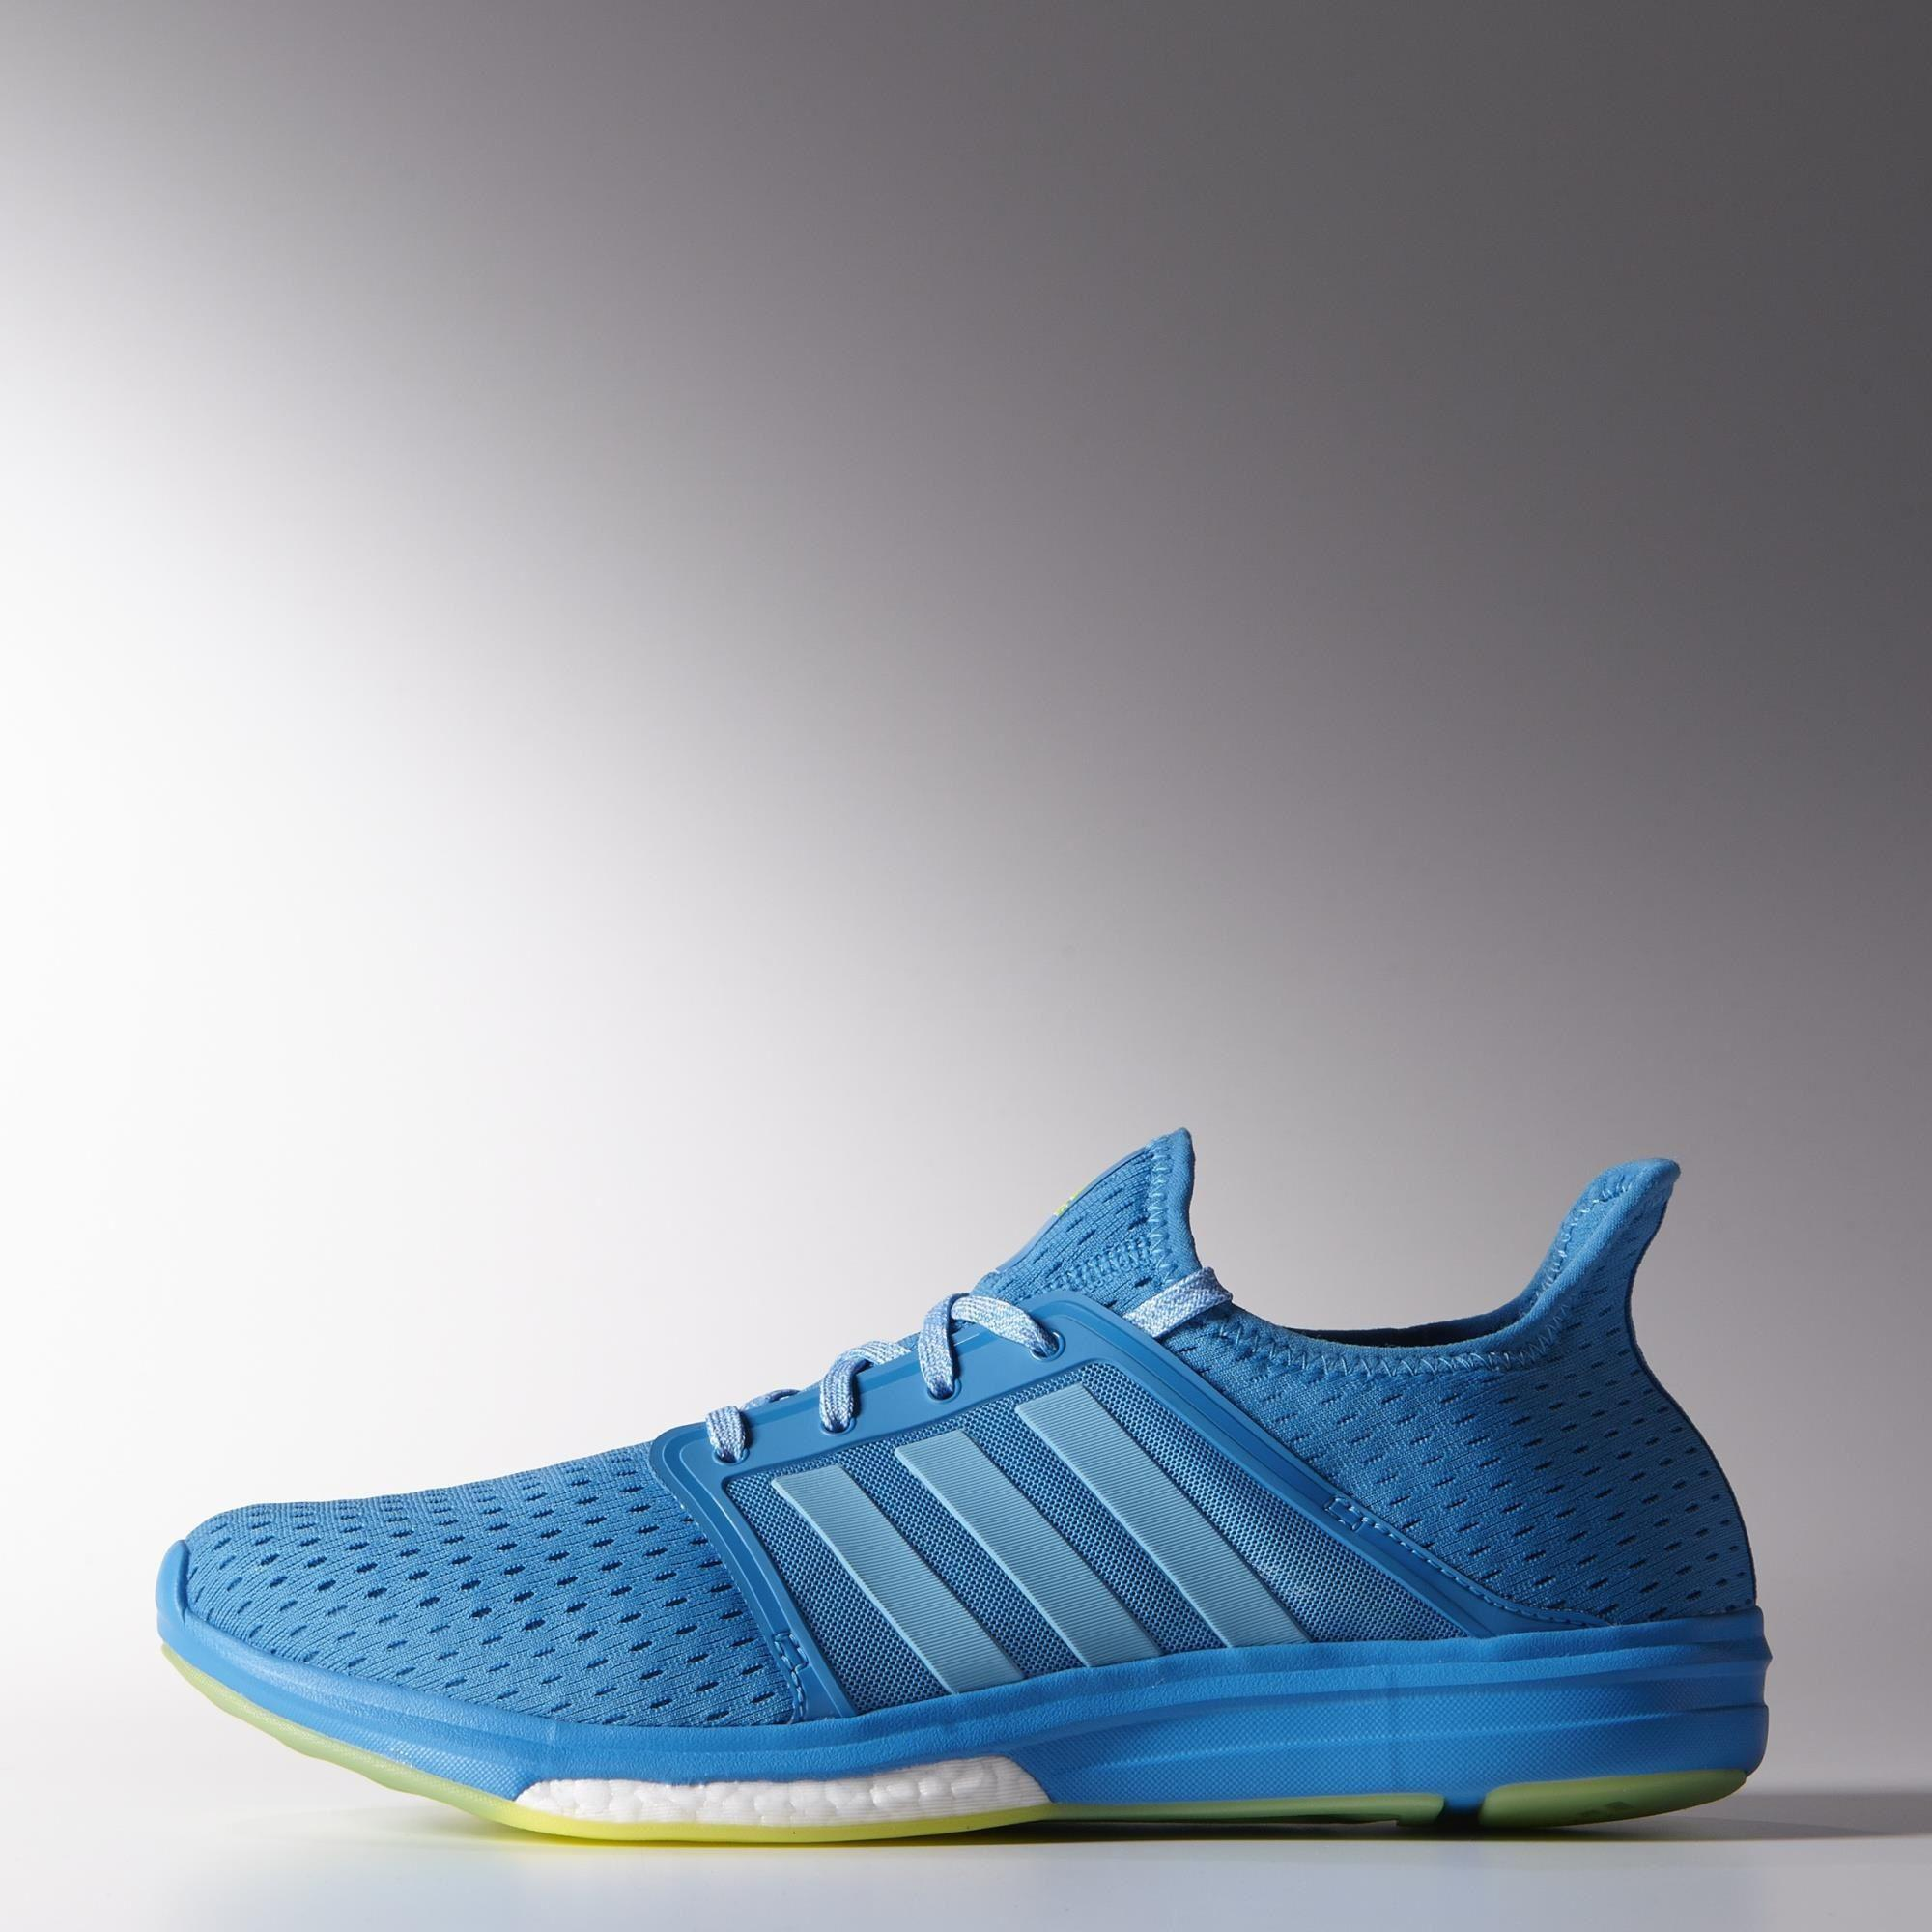 lower price with clearance prices huge inventory Adidas Mens Climachill Sonic Boost Running Shoes - Solar Blue